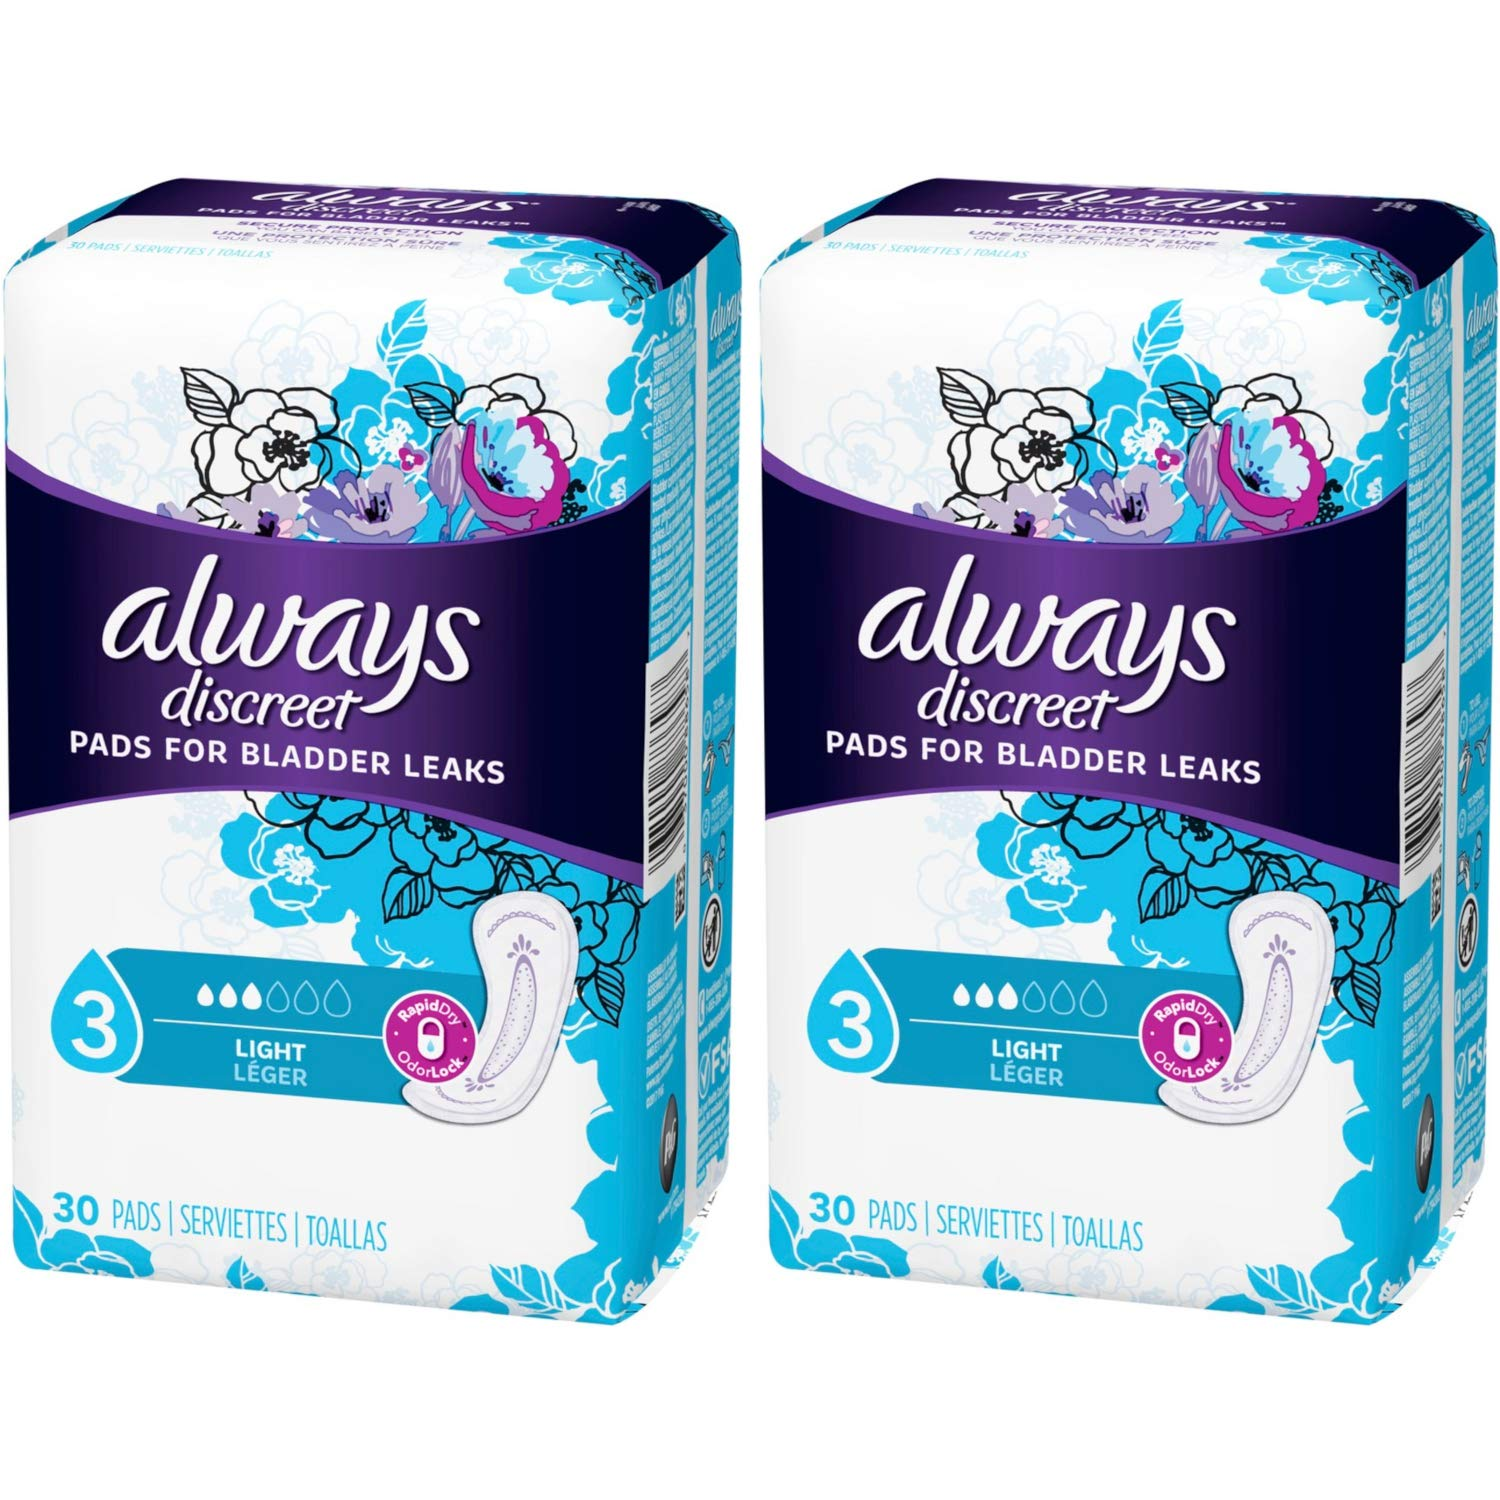 Always Discreet, Incontinence Light Pads, 3 Drops, 30 Pads each (Value Pack of 2): Amazon.com: Grocery & Gourmet Food